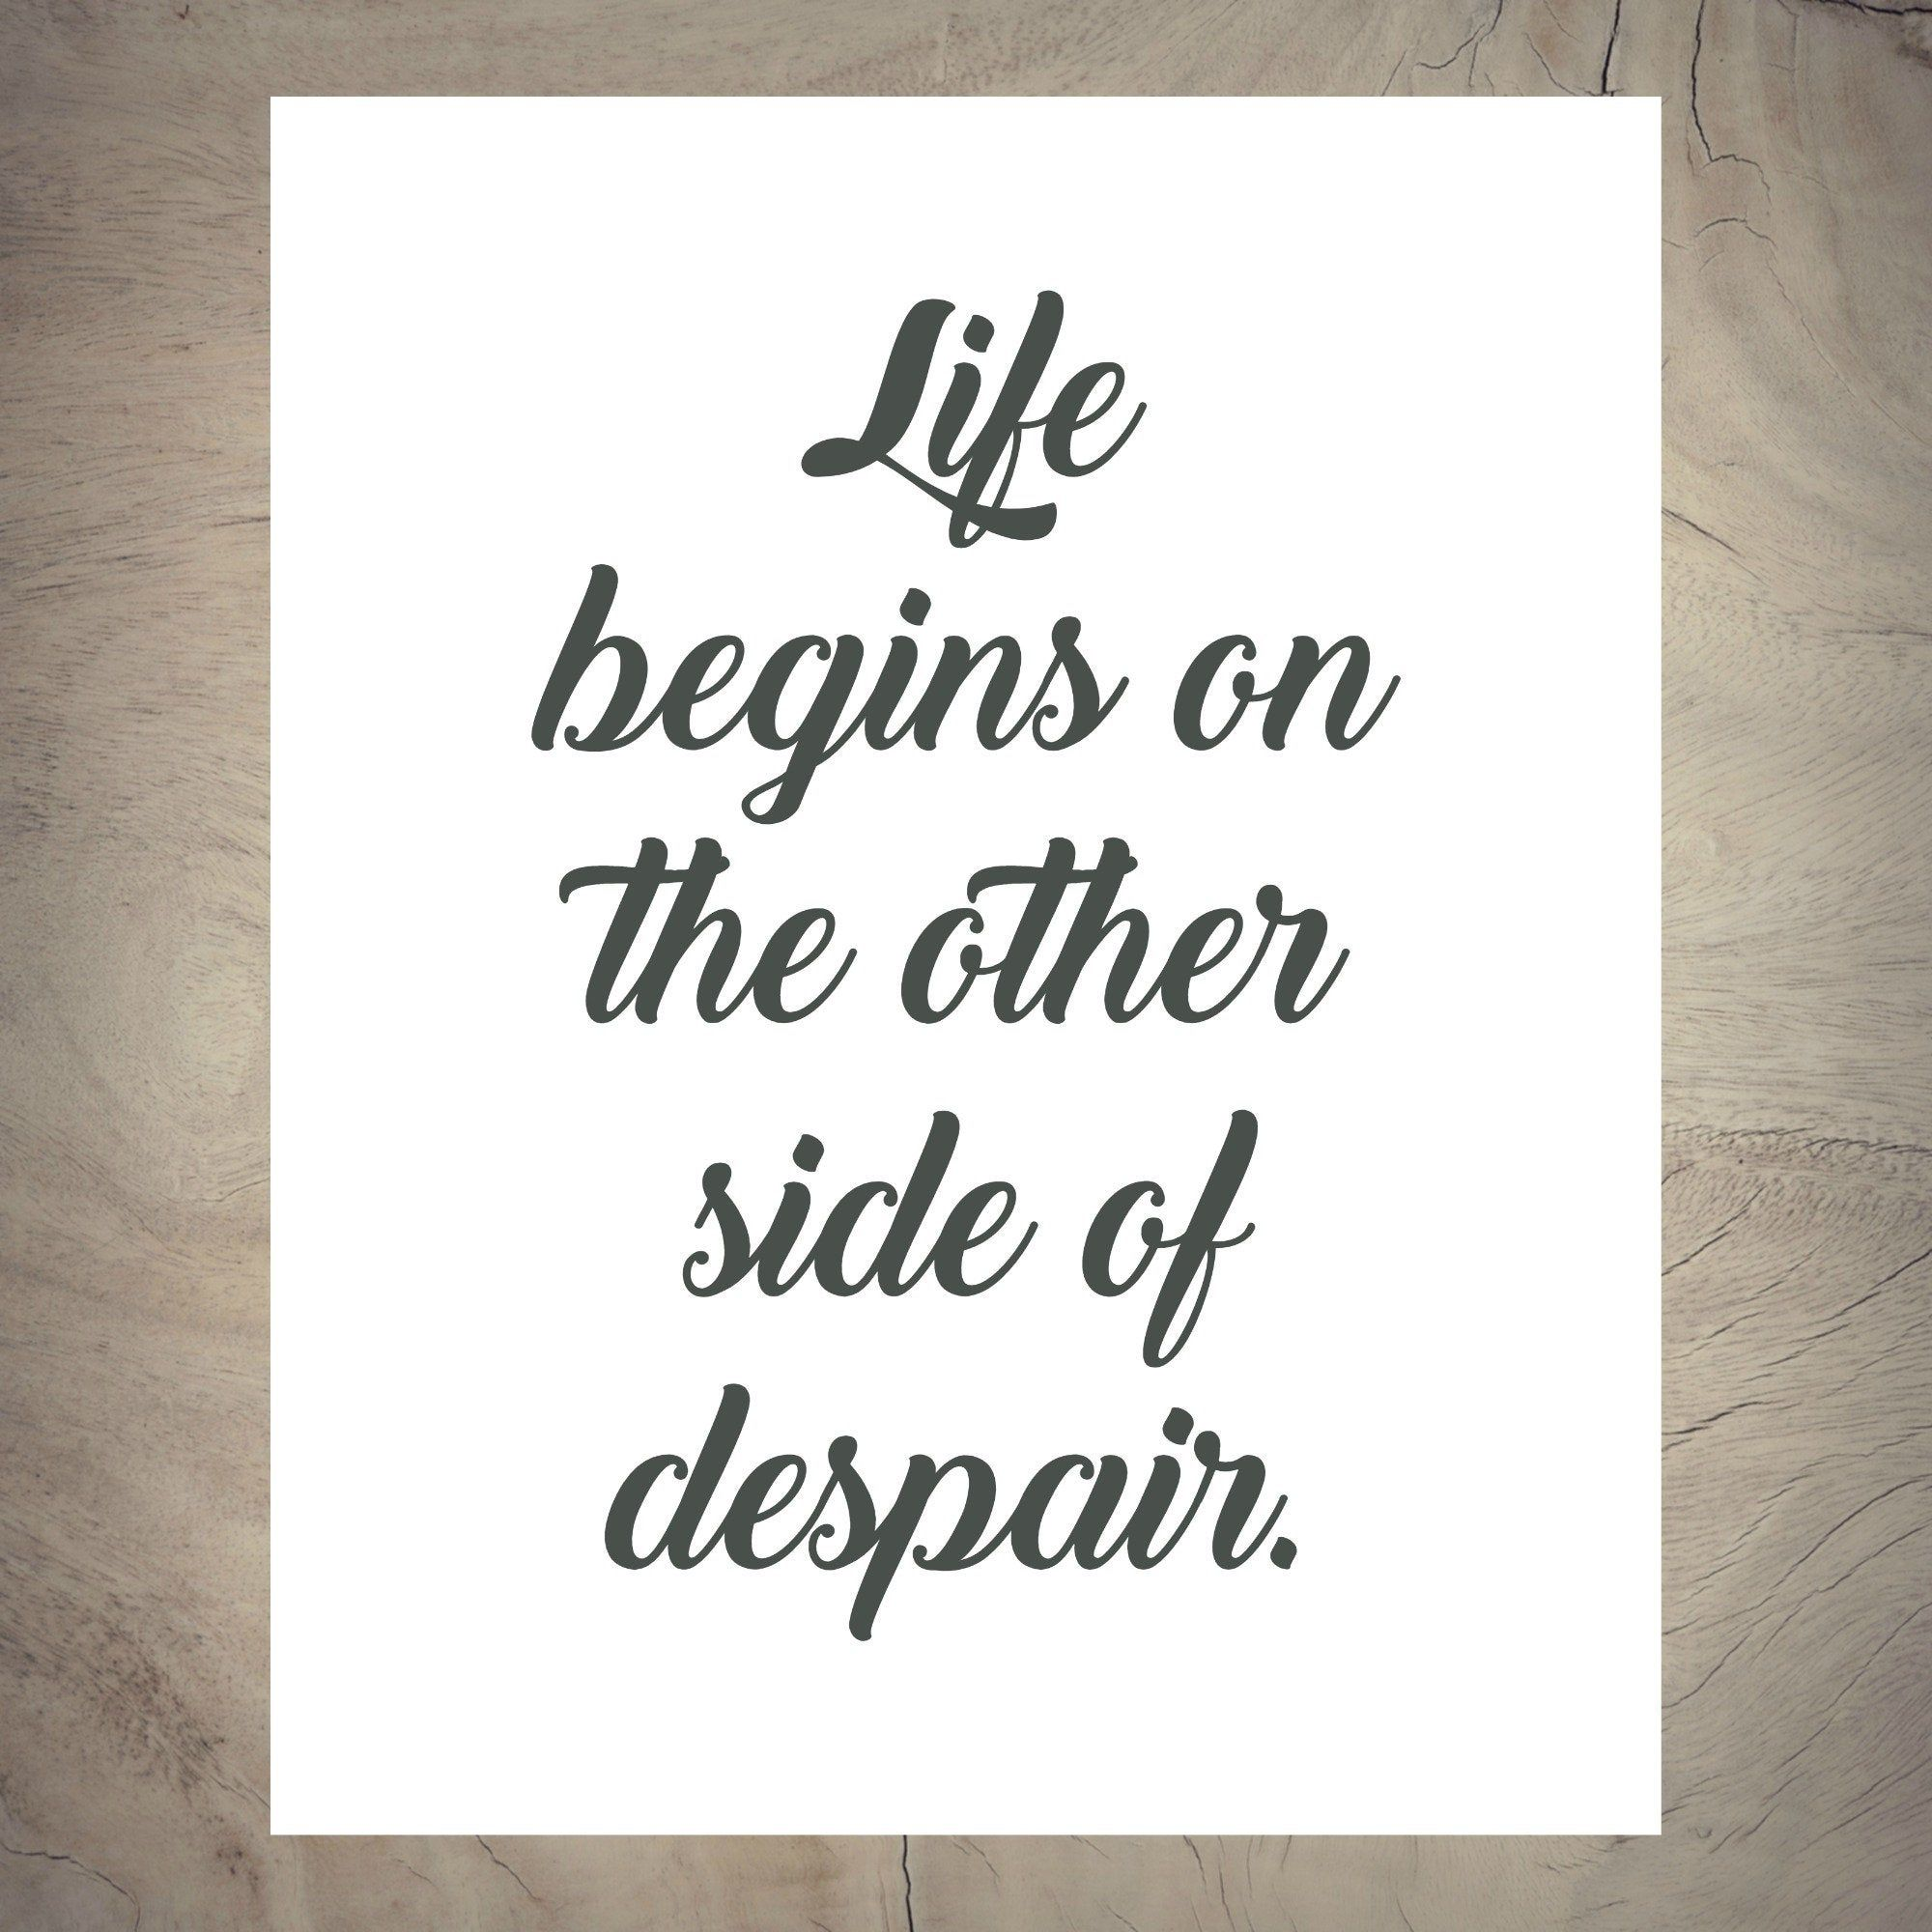 Life begins on the other side of despair. - Jean Paul Sartre - Quote - Printable - Life begins - the other side - despair - Life Stars #jeanpaulsartre